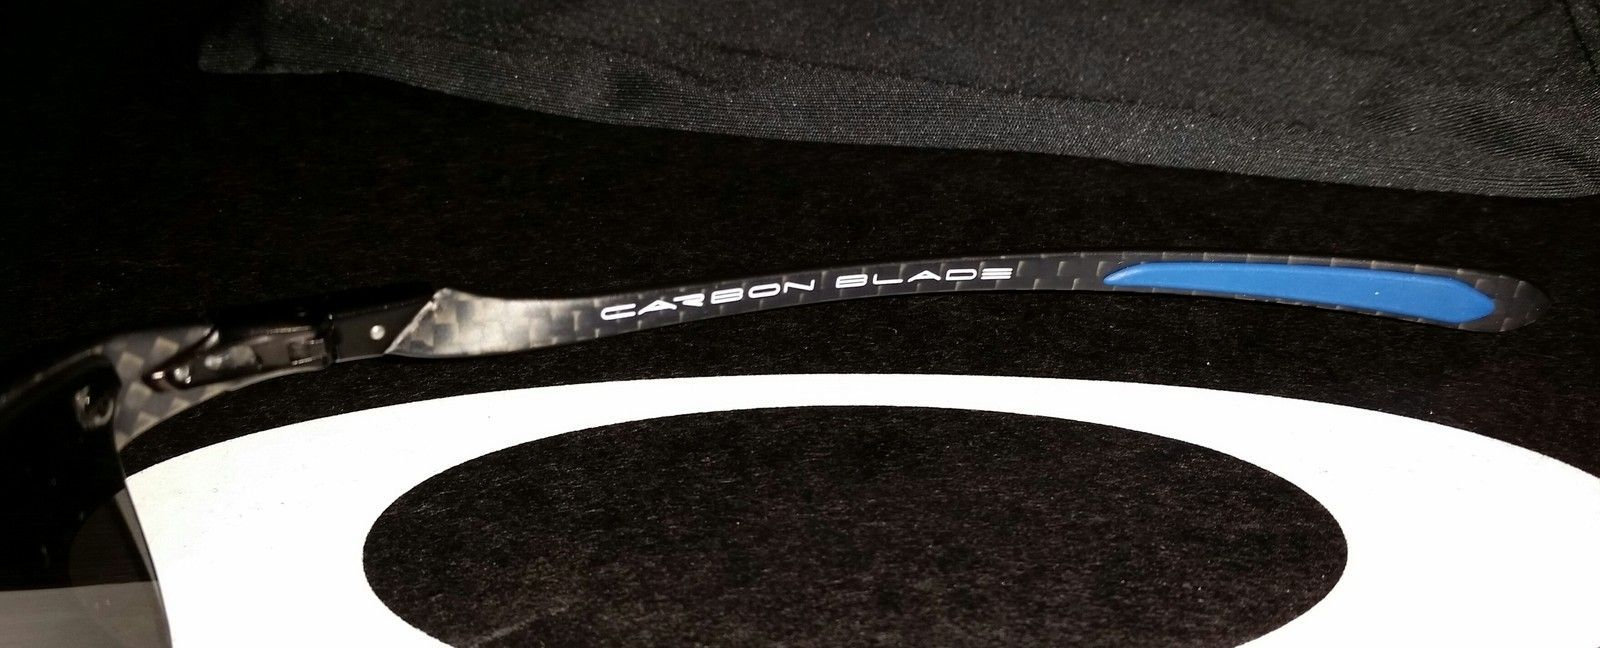 LNIB Carbon Blade Matte black Ice - uploadfromtaptalk1418601341374.jpg